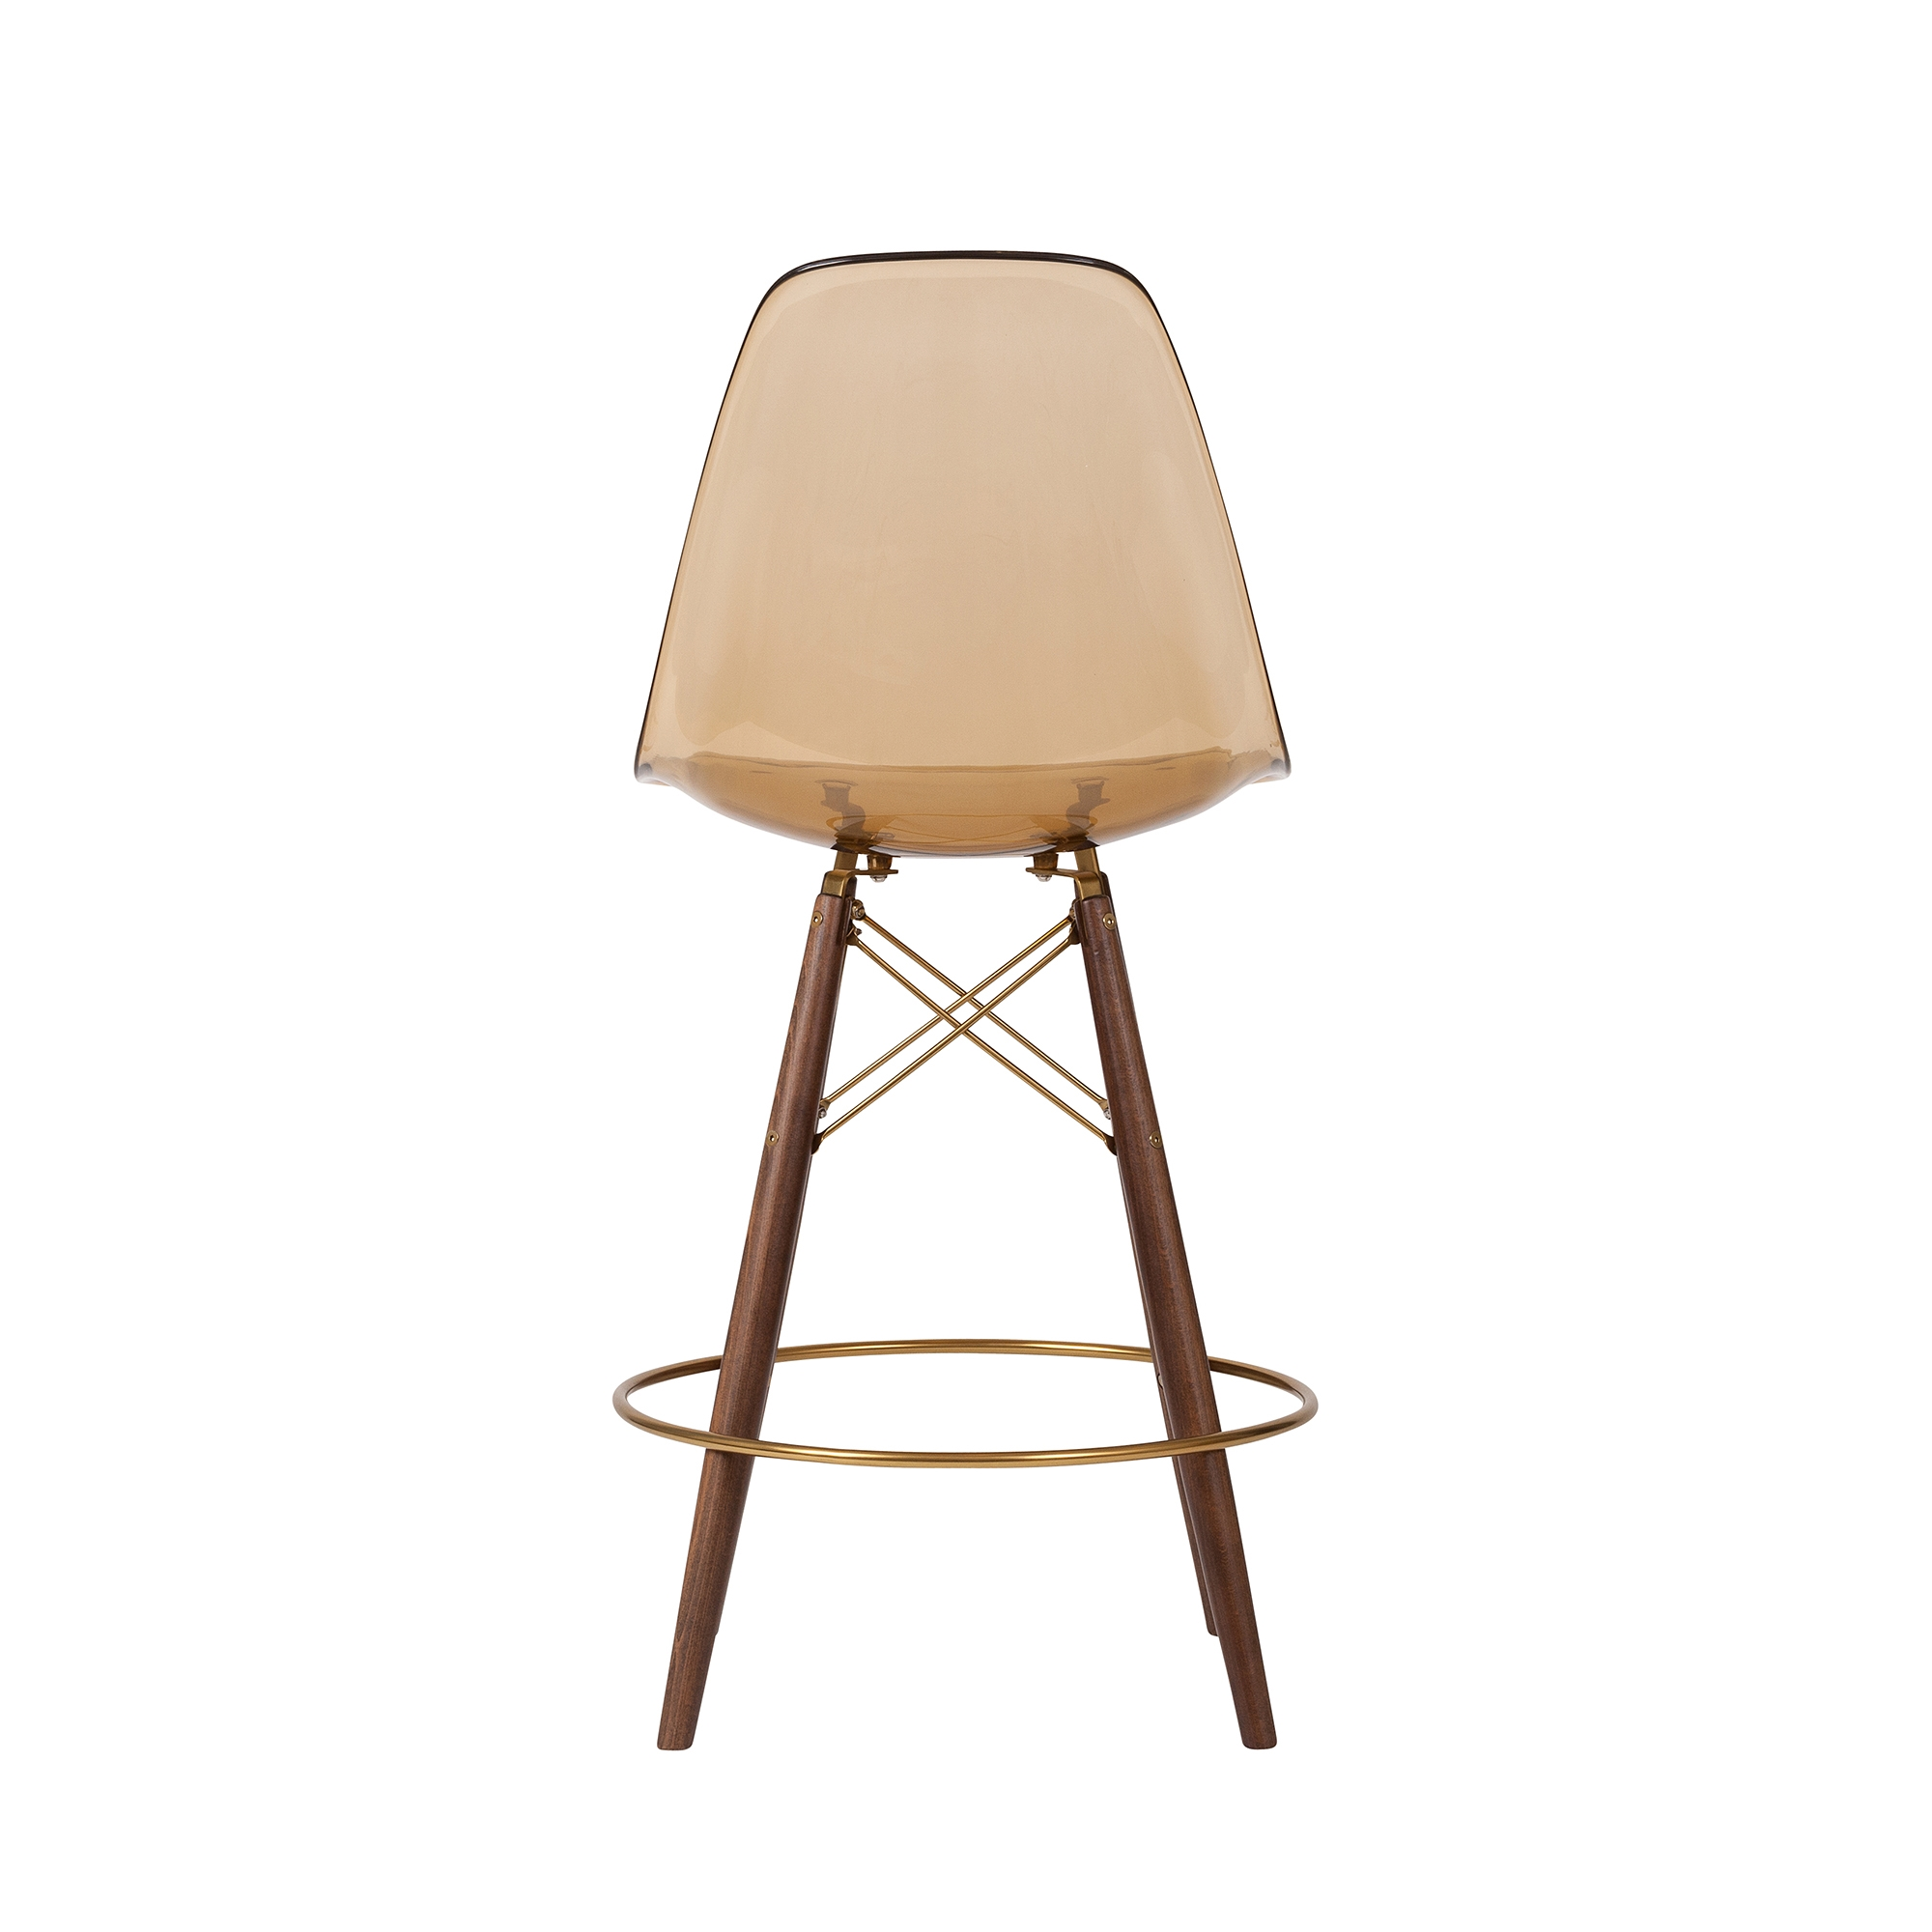 Miraculous Molded Midcentury Modern Amber Fiberglass Counter Stool Champagne Gold Detail The Khazana Home Austin Furniture Store Squirreltailoven Fun Painted Chair Ideas Images Squirreltailovenorg